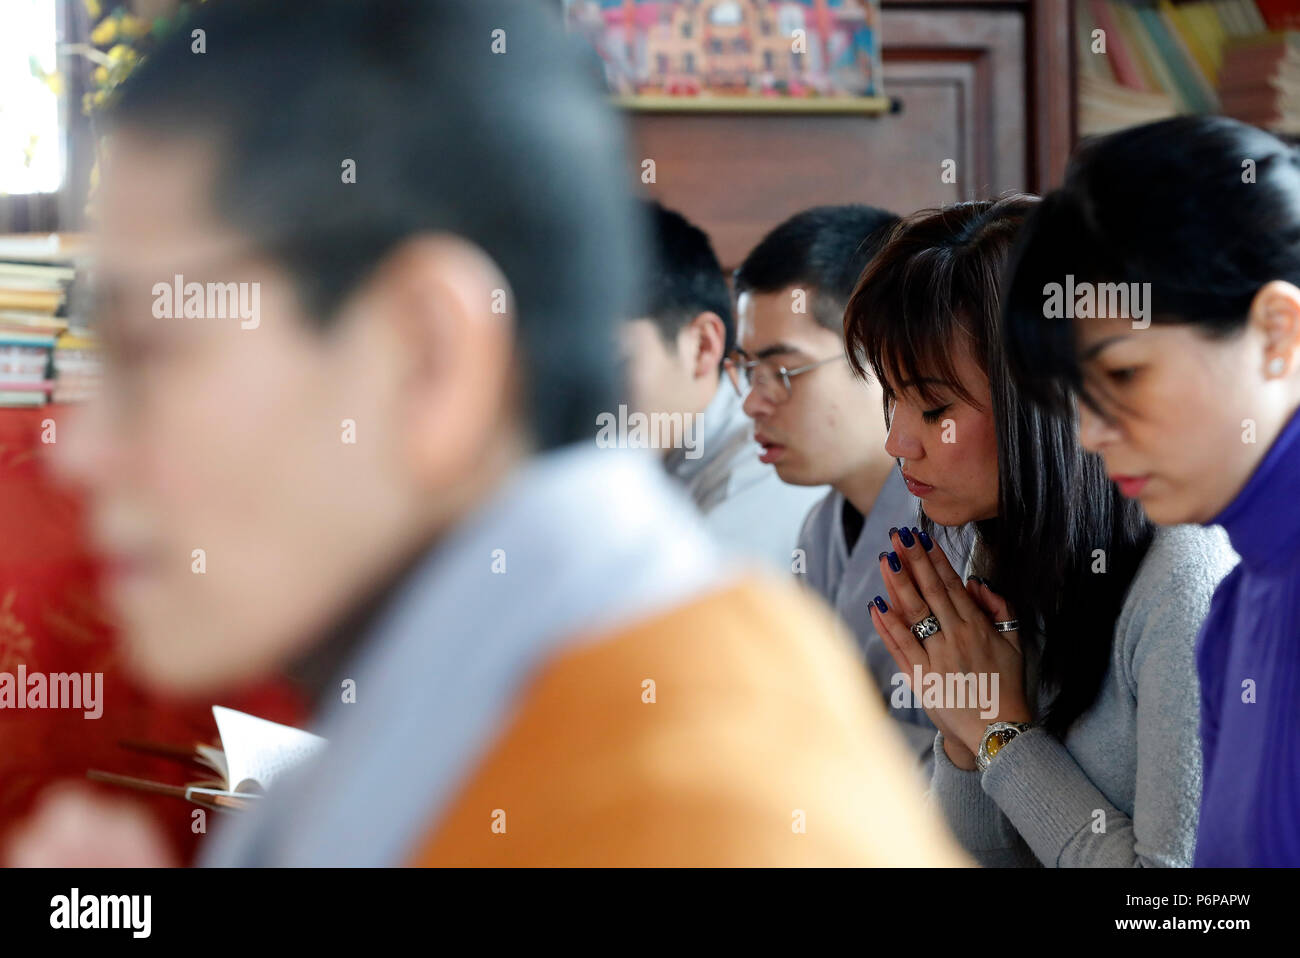 Chua Tu An Buddhist temple. Vietnamese New Year ( Tet ) celebration.  Saint-Pierre en Faucigny. France. - Stock Image